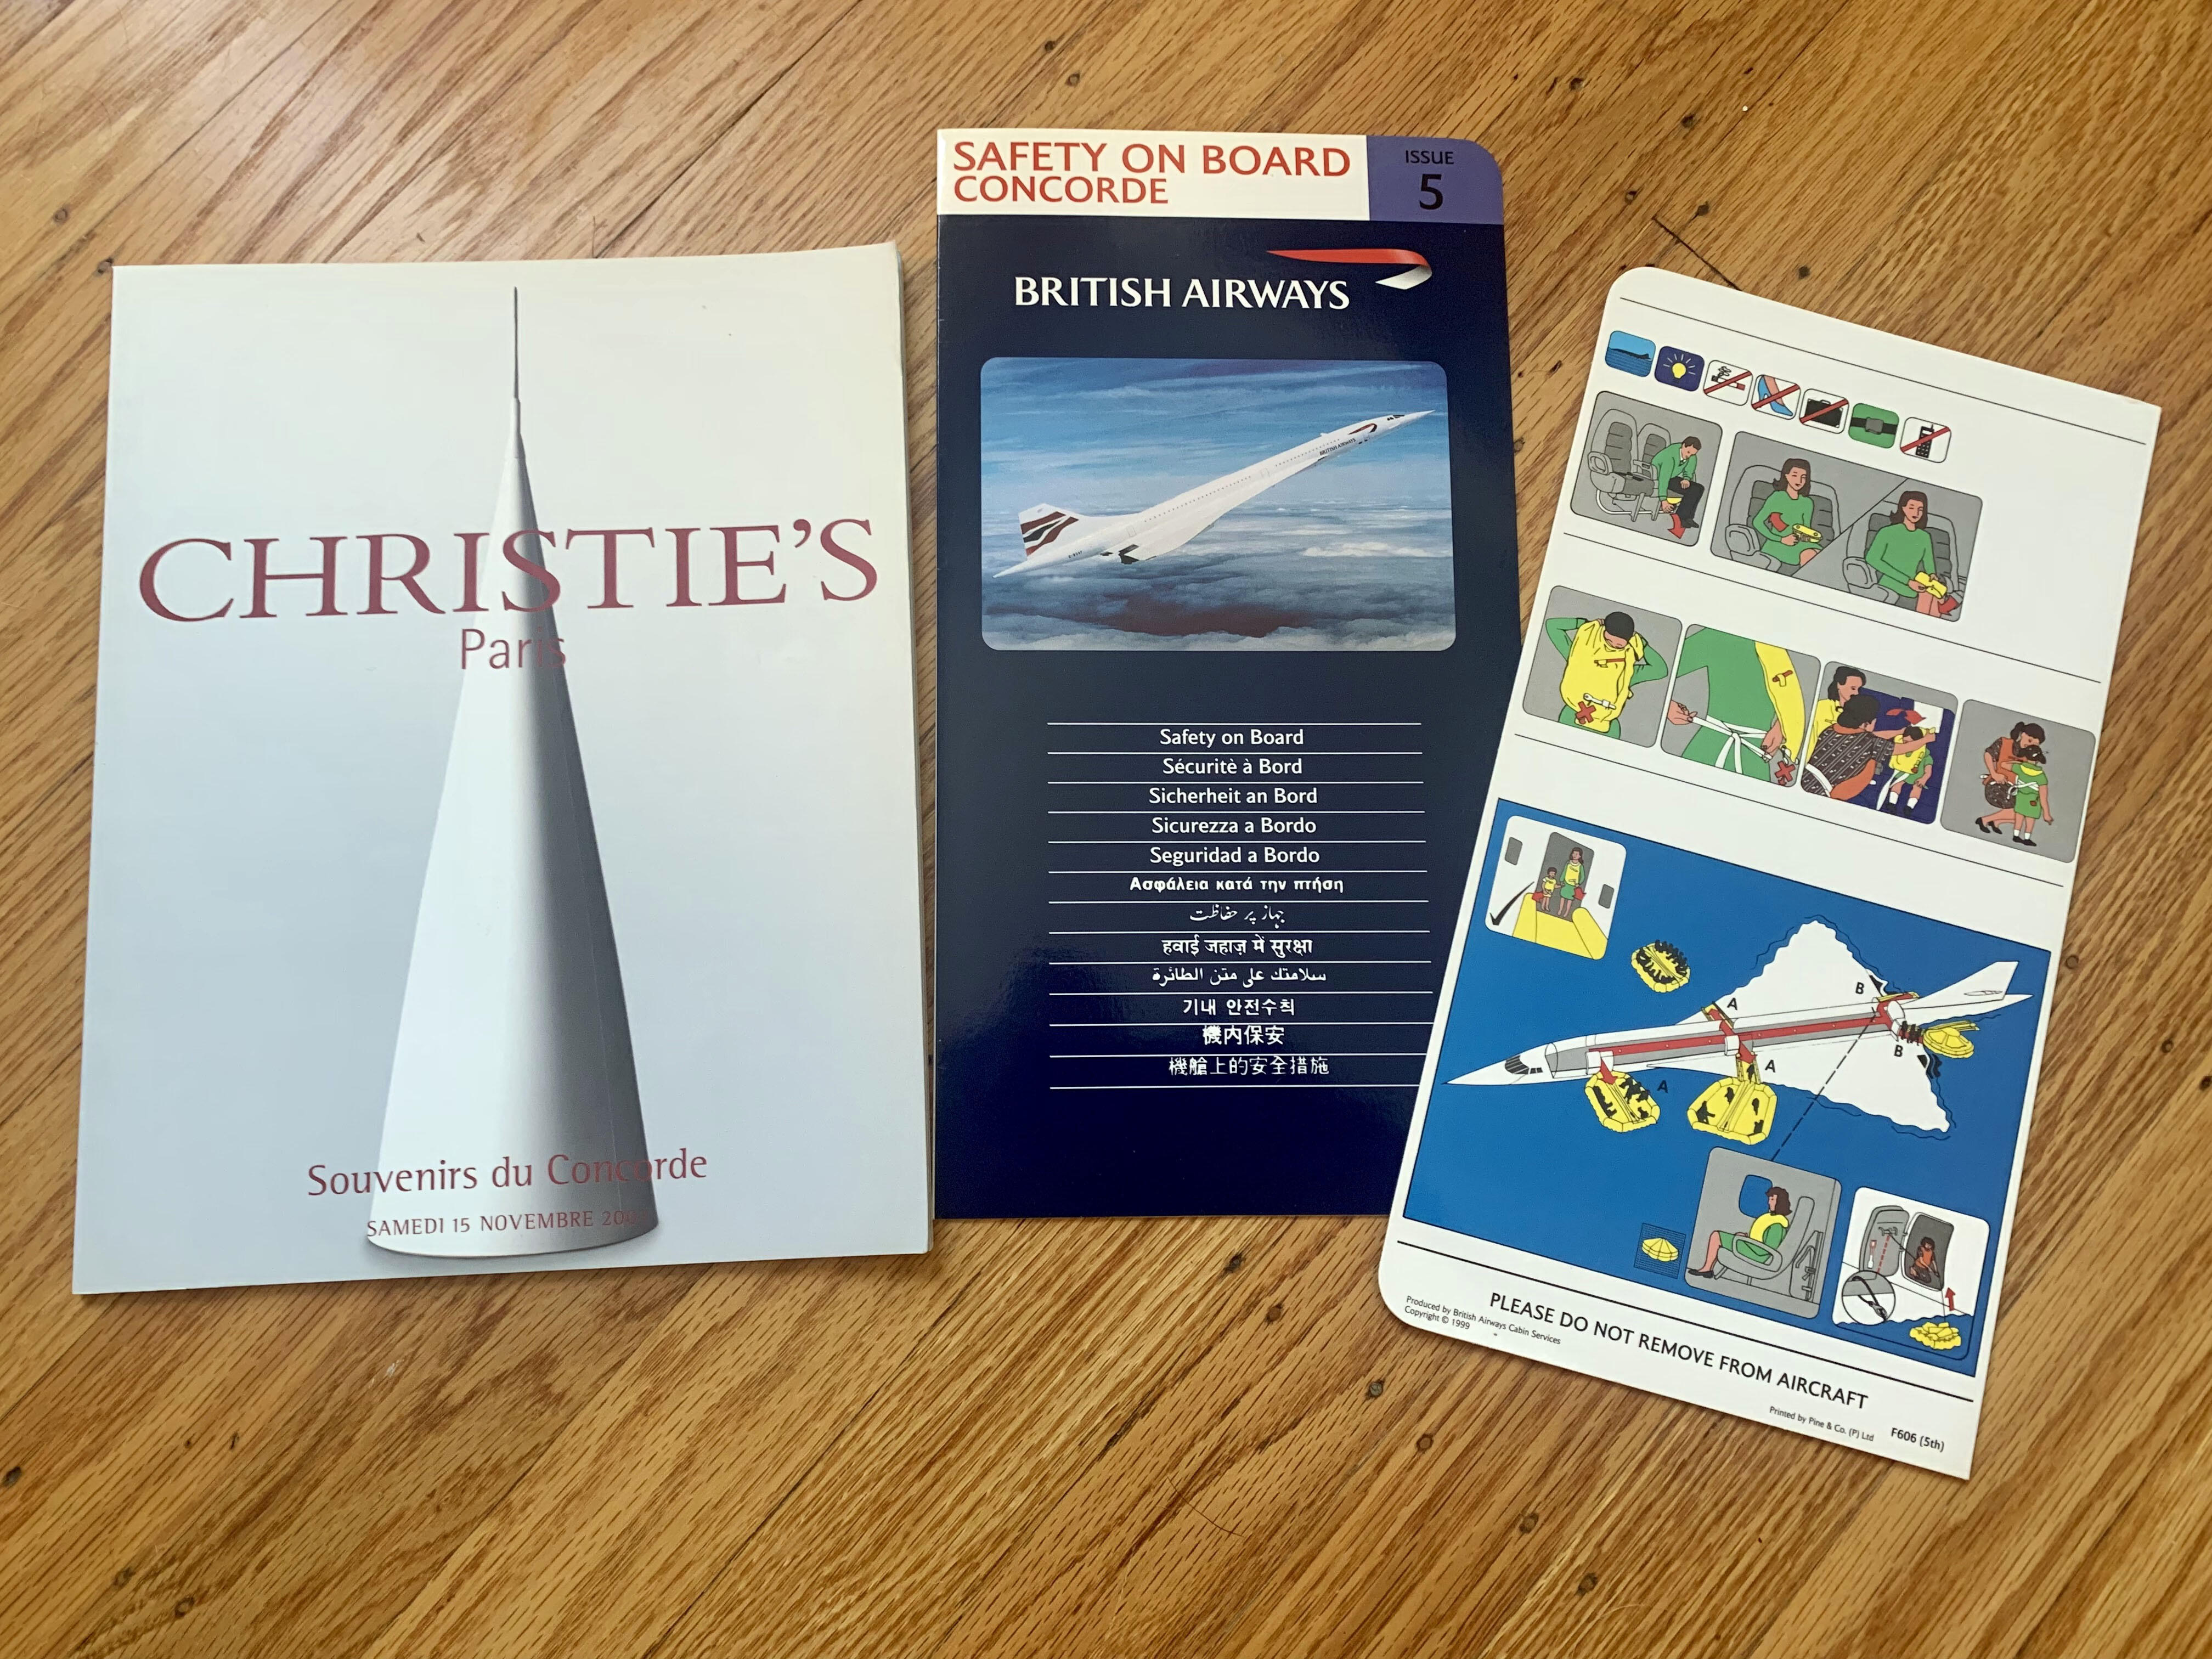 concorde-catalog-and-safety-card